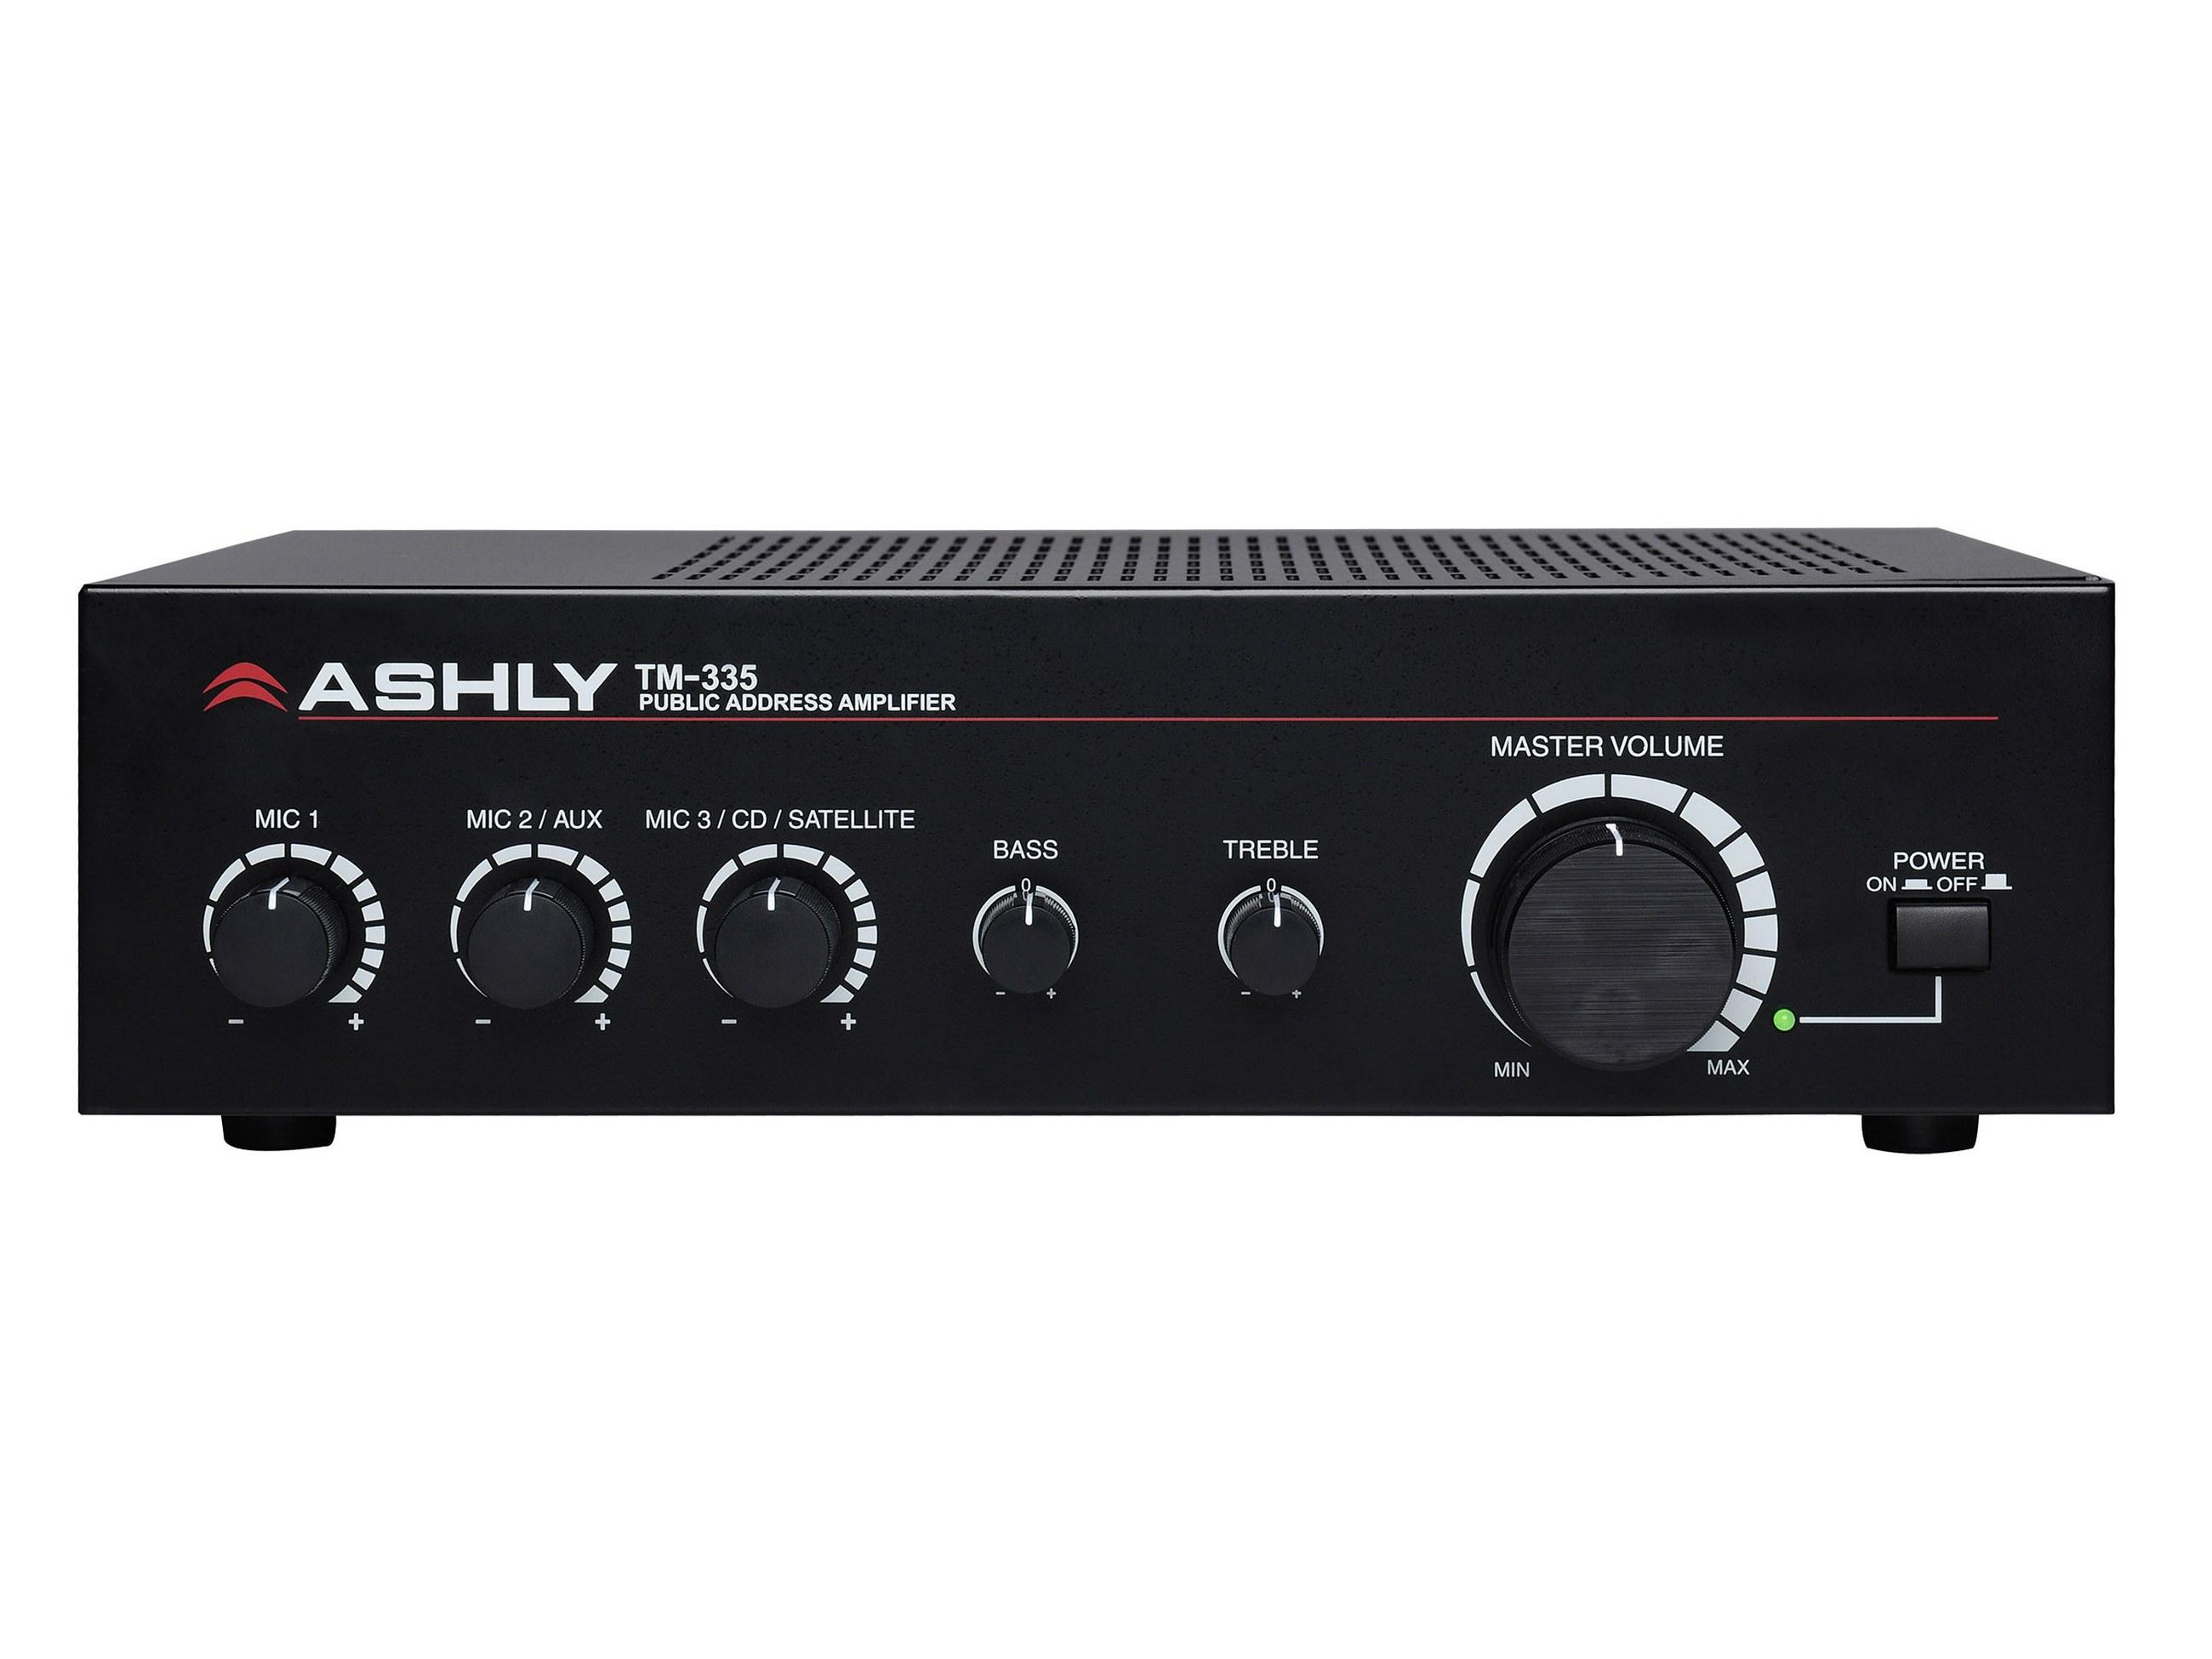 Ashly TM-335 35-W 3-Input Mixer/Amp w Xfmr Isolated Constant-Voltage/4 Ohm Out